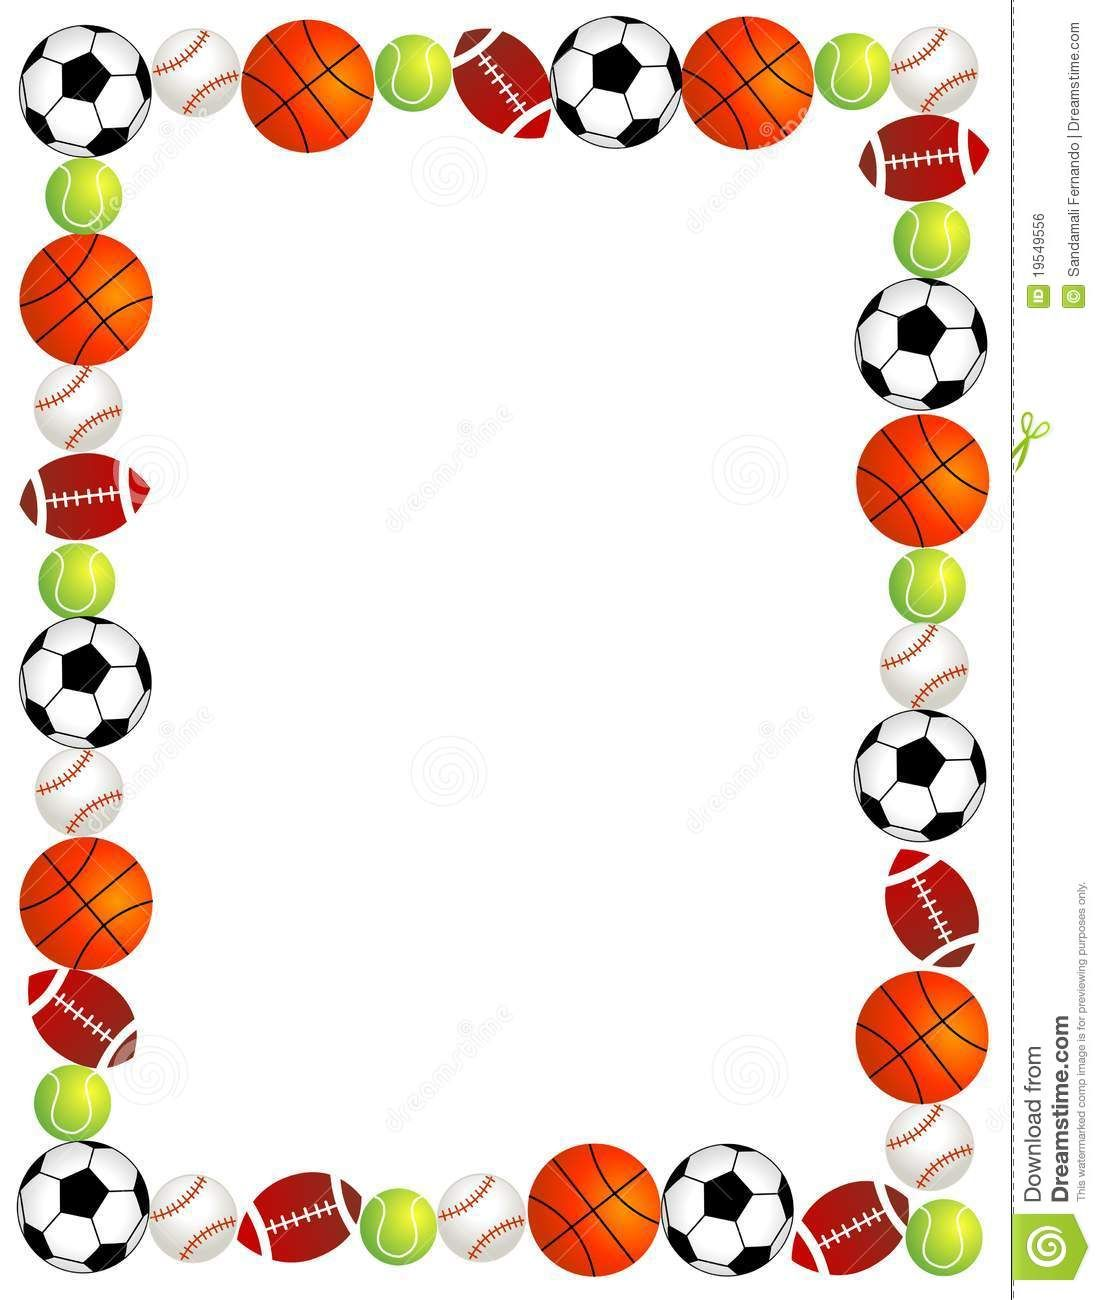 d674a6f79bb7 free sports balls scrapbook backgrounds - Google Search ...